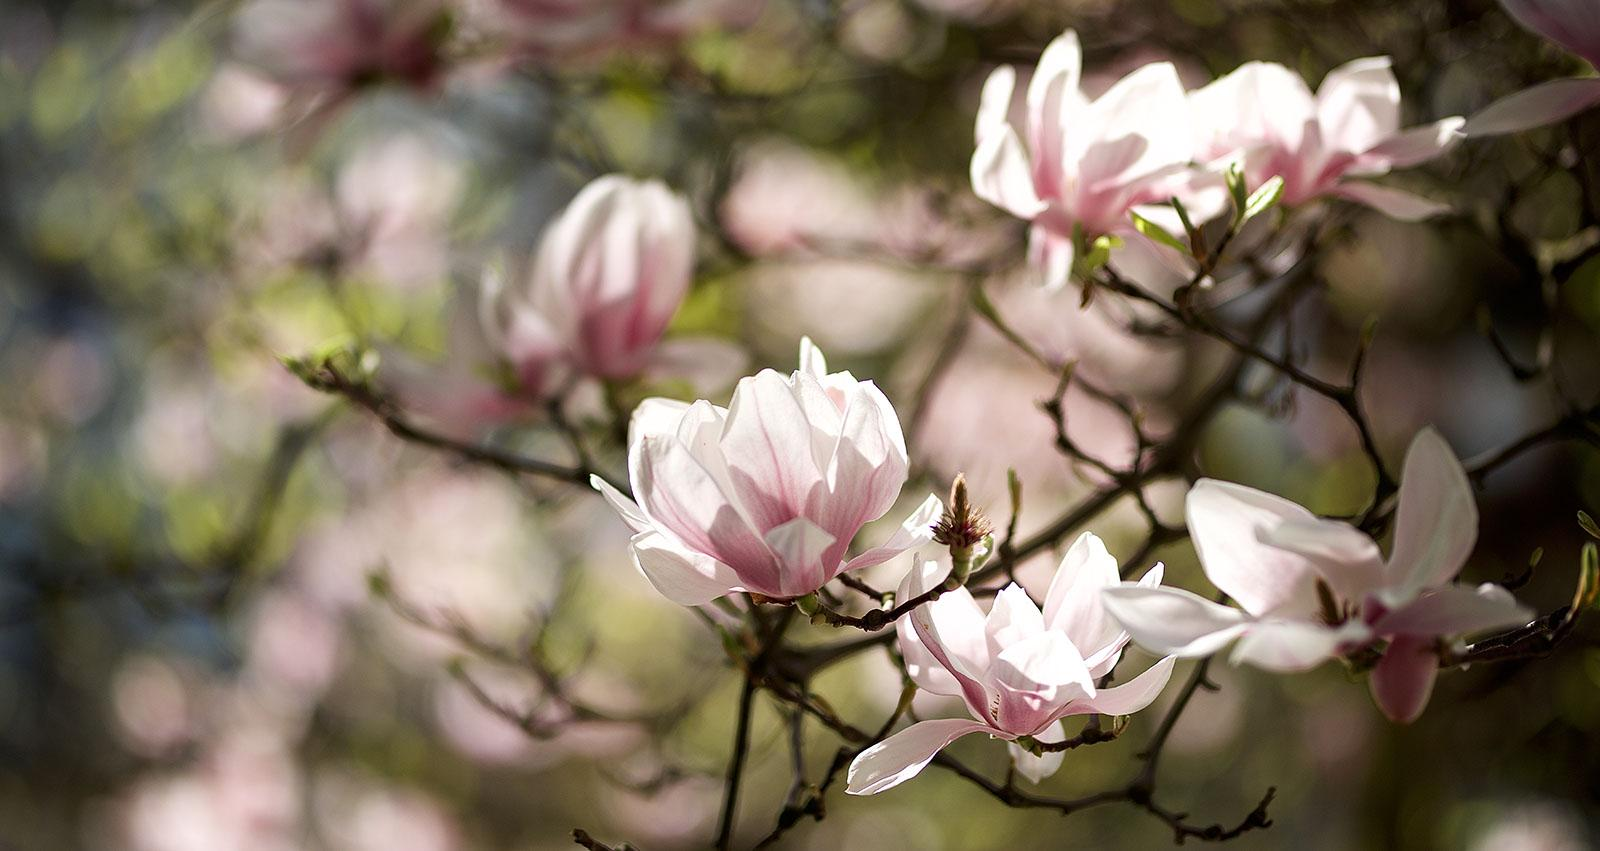 With the coming of spring, the blooming magnolias in the Palace Gardens shine like magnificent jewels. – © Tomas Vrtal